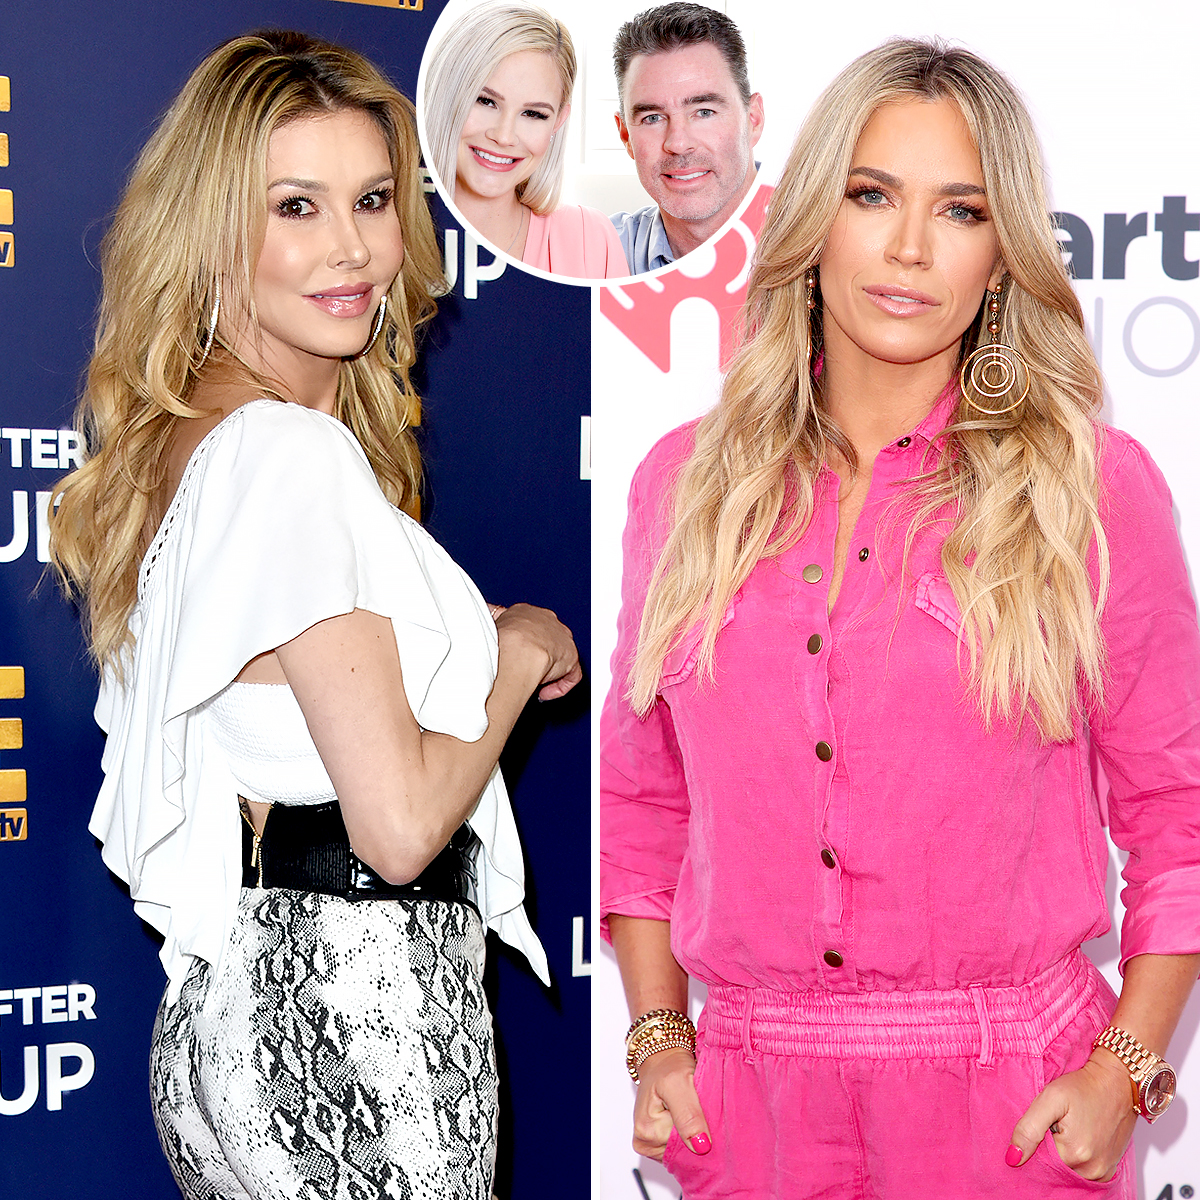 Brandi-Glanville-and-Teddi-Mellencamp-discuss-Jim-and-Meghan-Edmonds